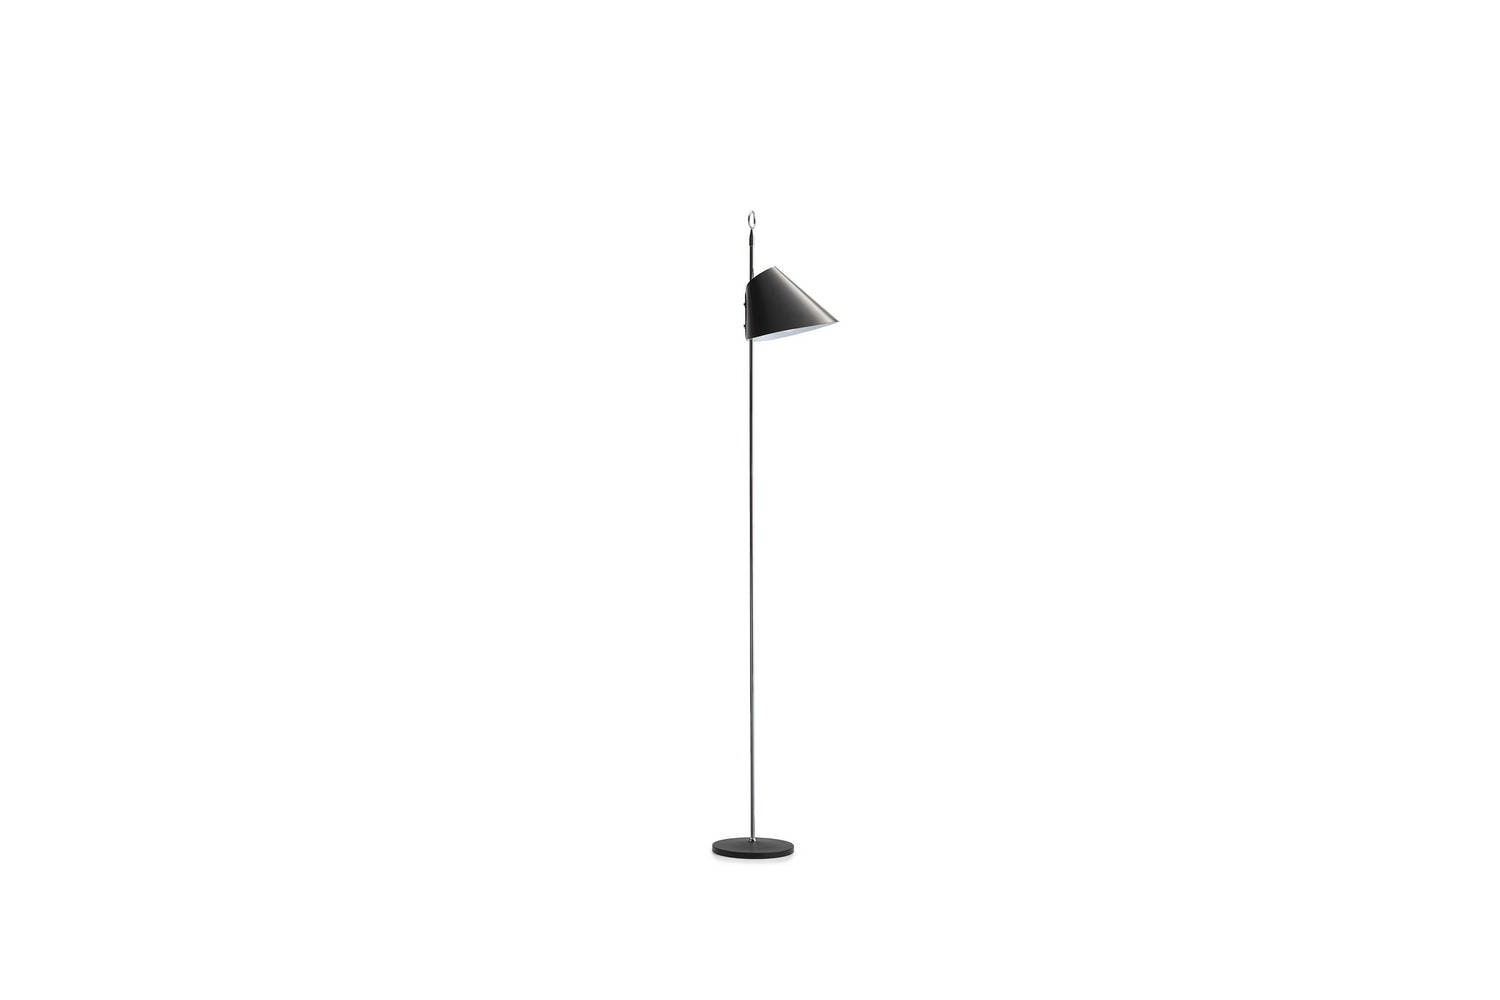 Monachella Floor Lamp by Luigi Caccia Dominioni for Azucena